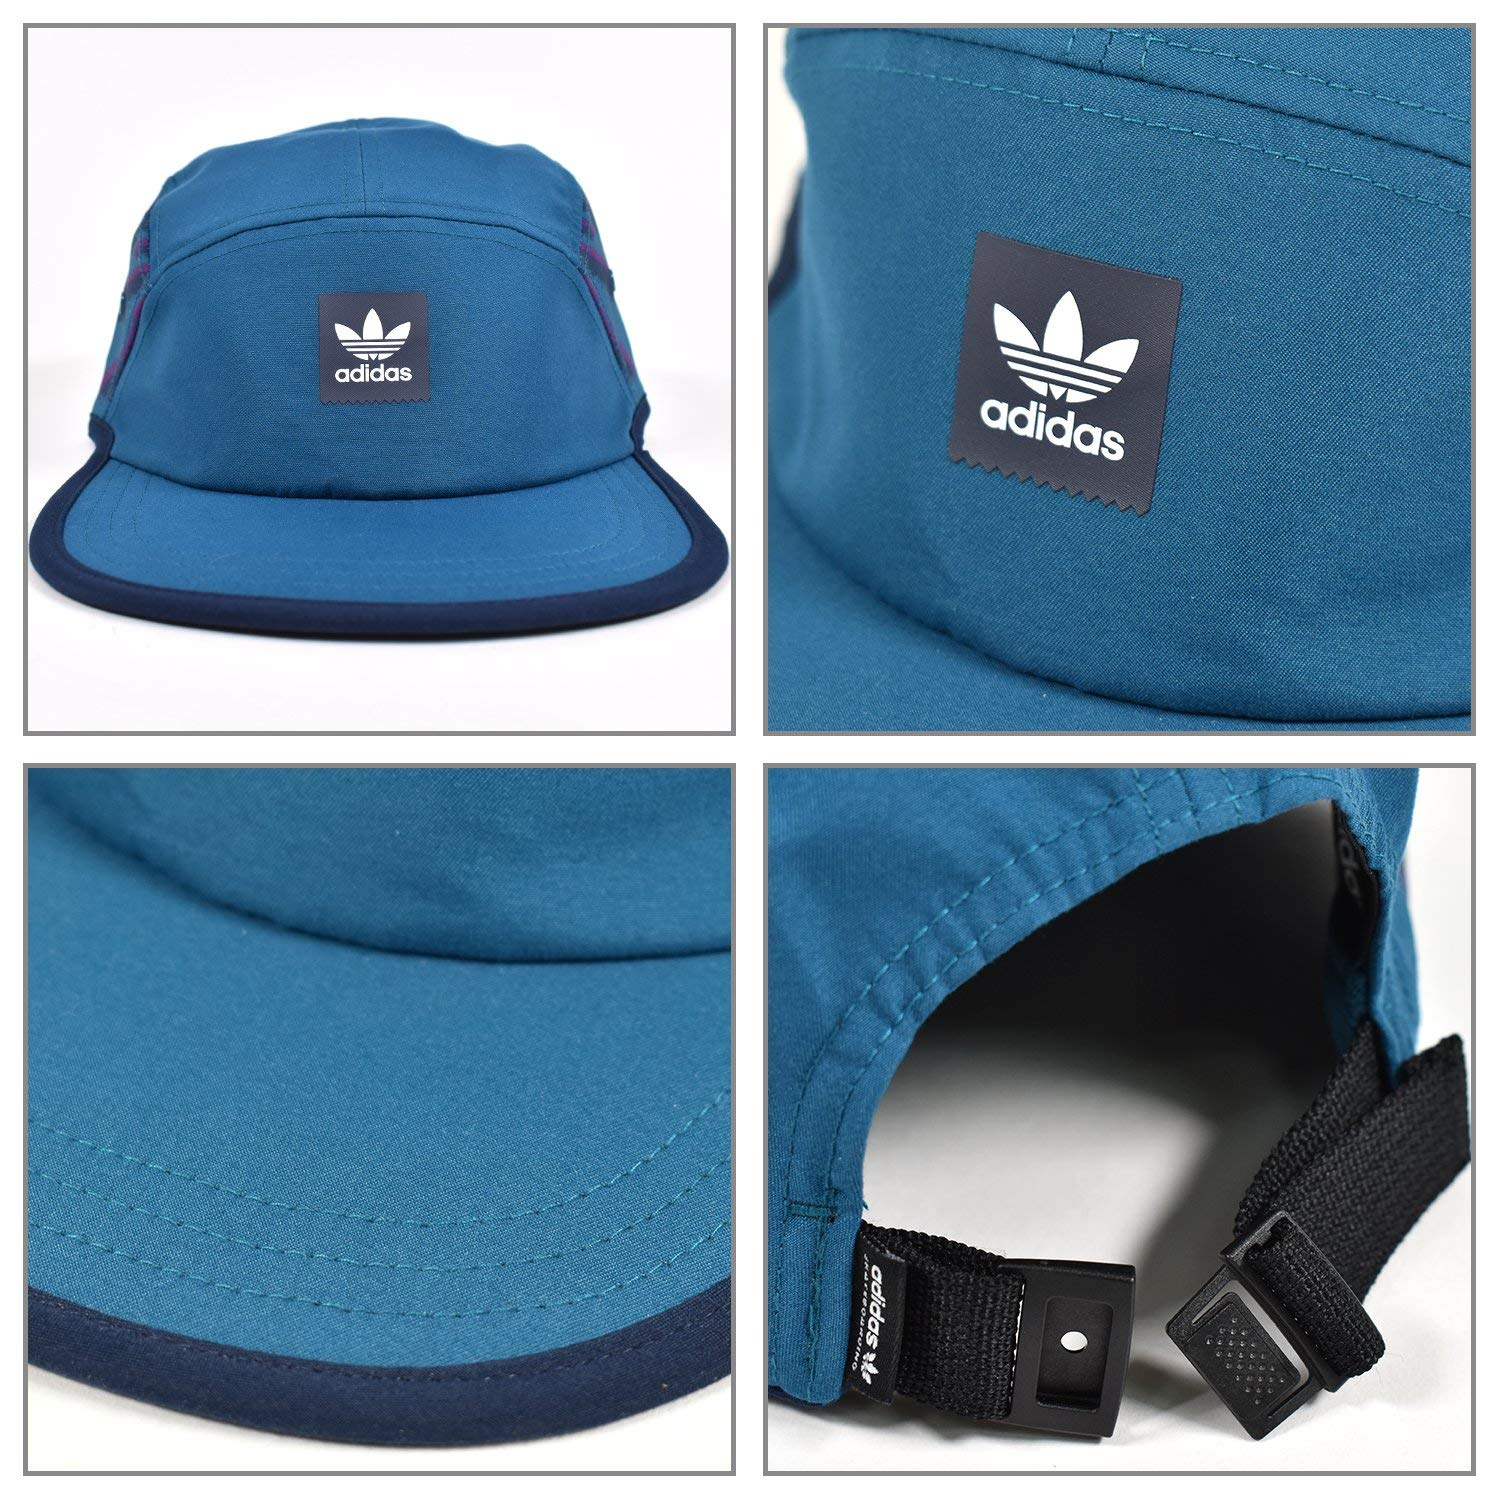 7d64690e61a ADIDAS Damen Court 5 Panel Kappe OSFW DH2583 Real Teal